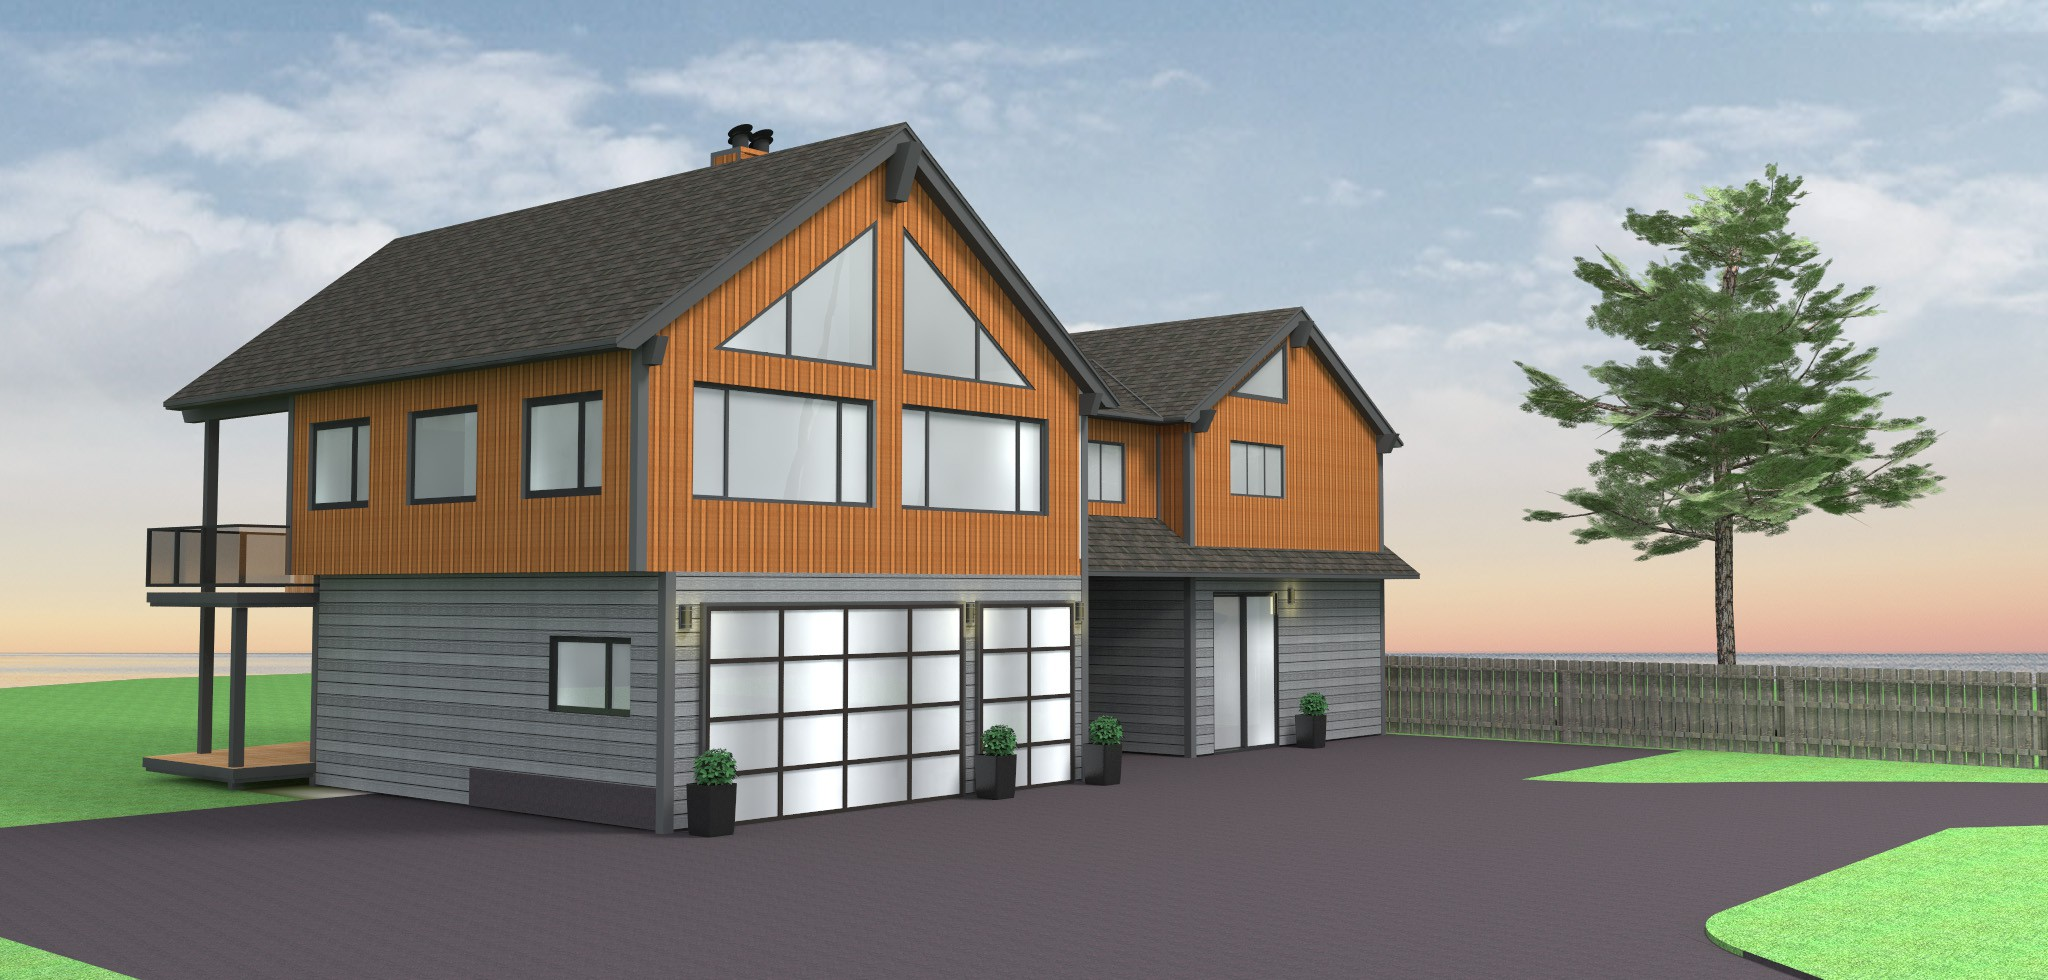 Final Beach House with 6 Siding Versions